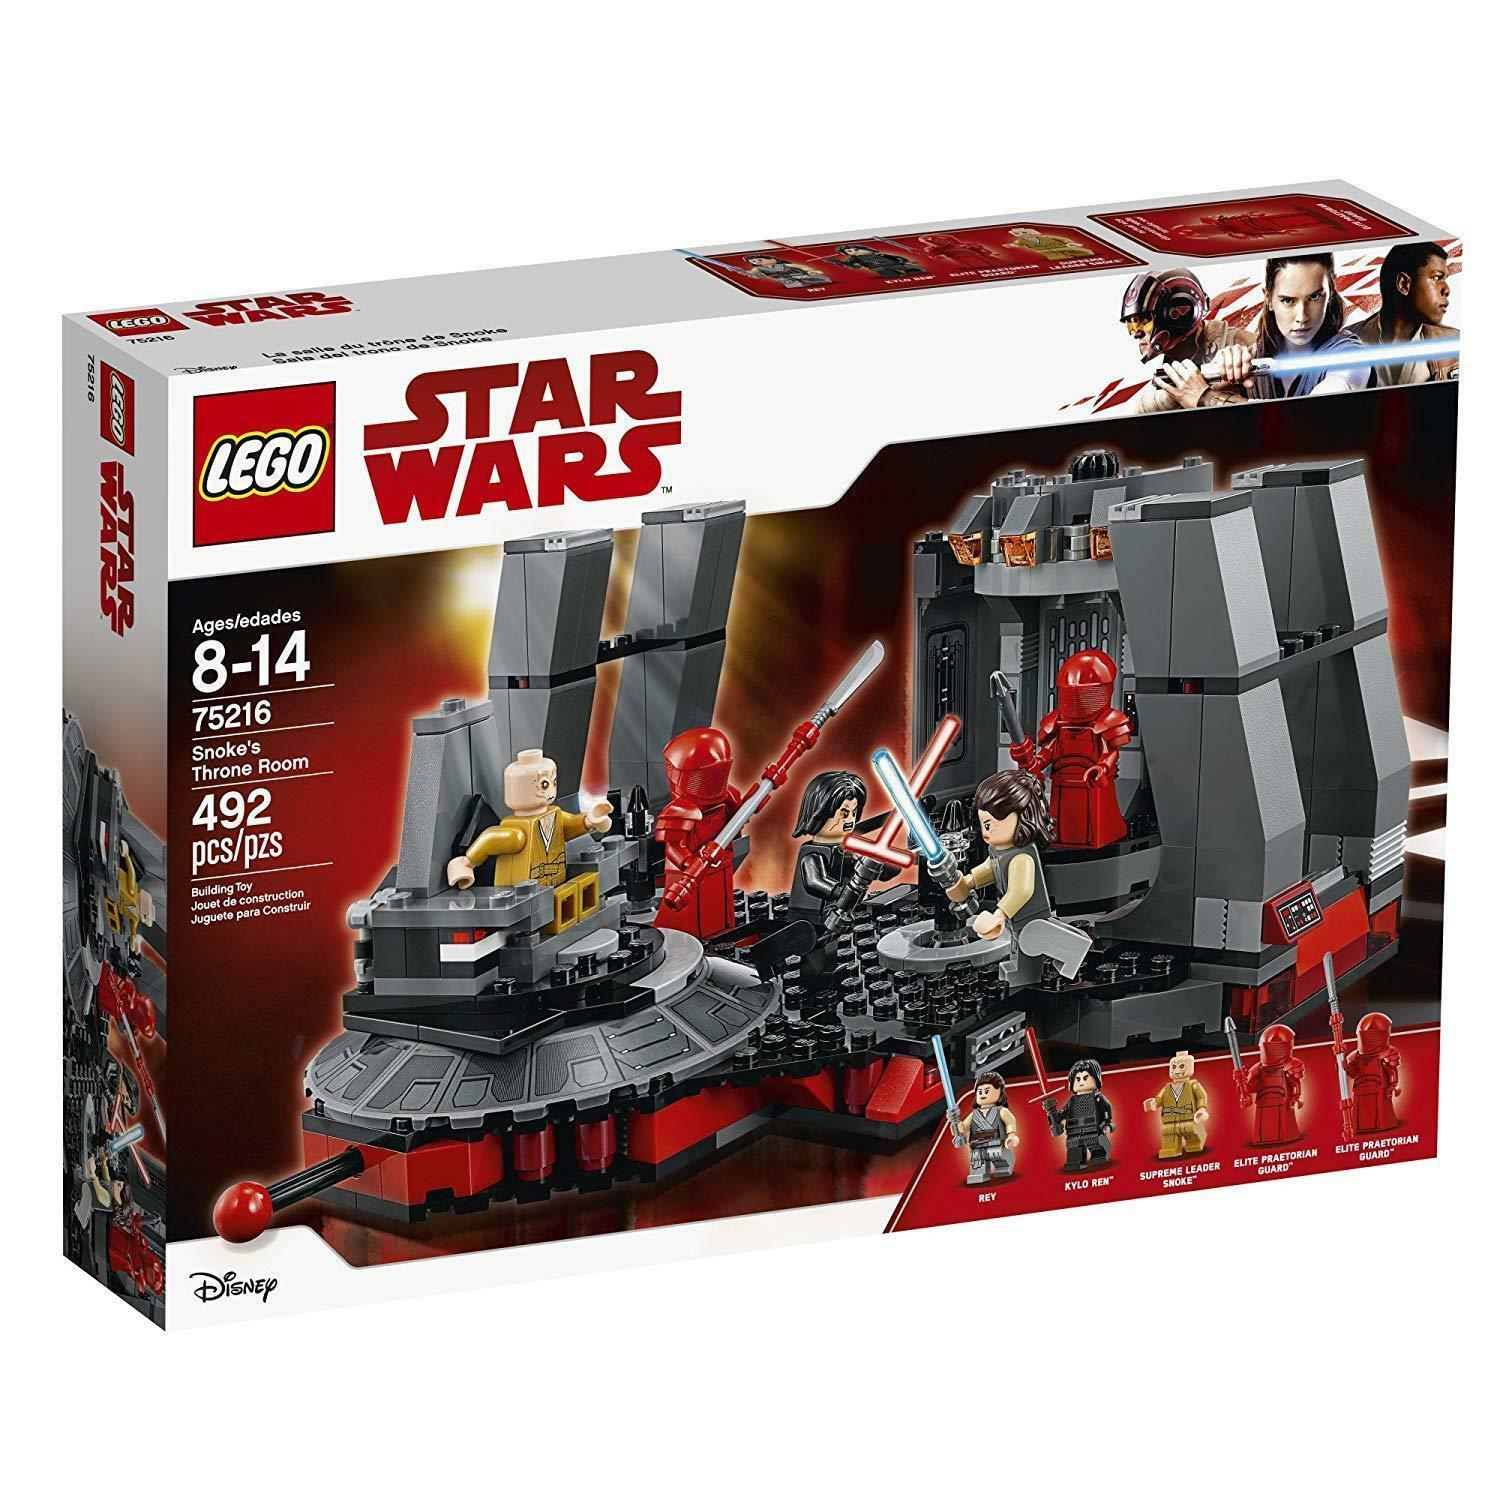 LEGO STAR WARS / SNOKE'S THRONE ROOM 492 PIECES / 75216 NEW FACTORY SEALED